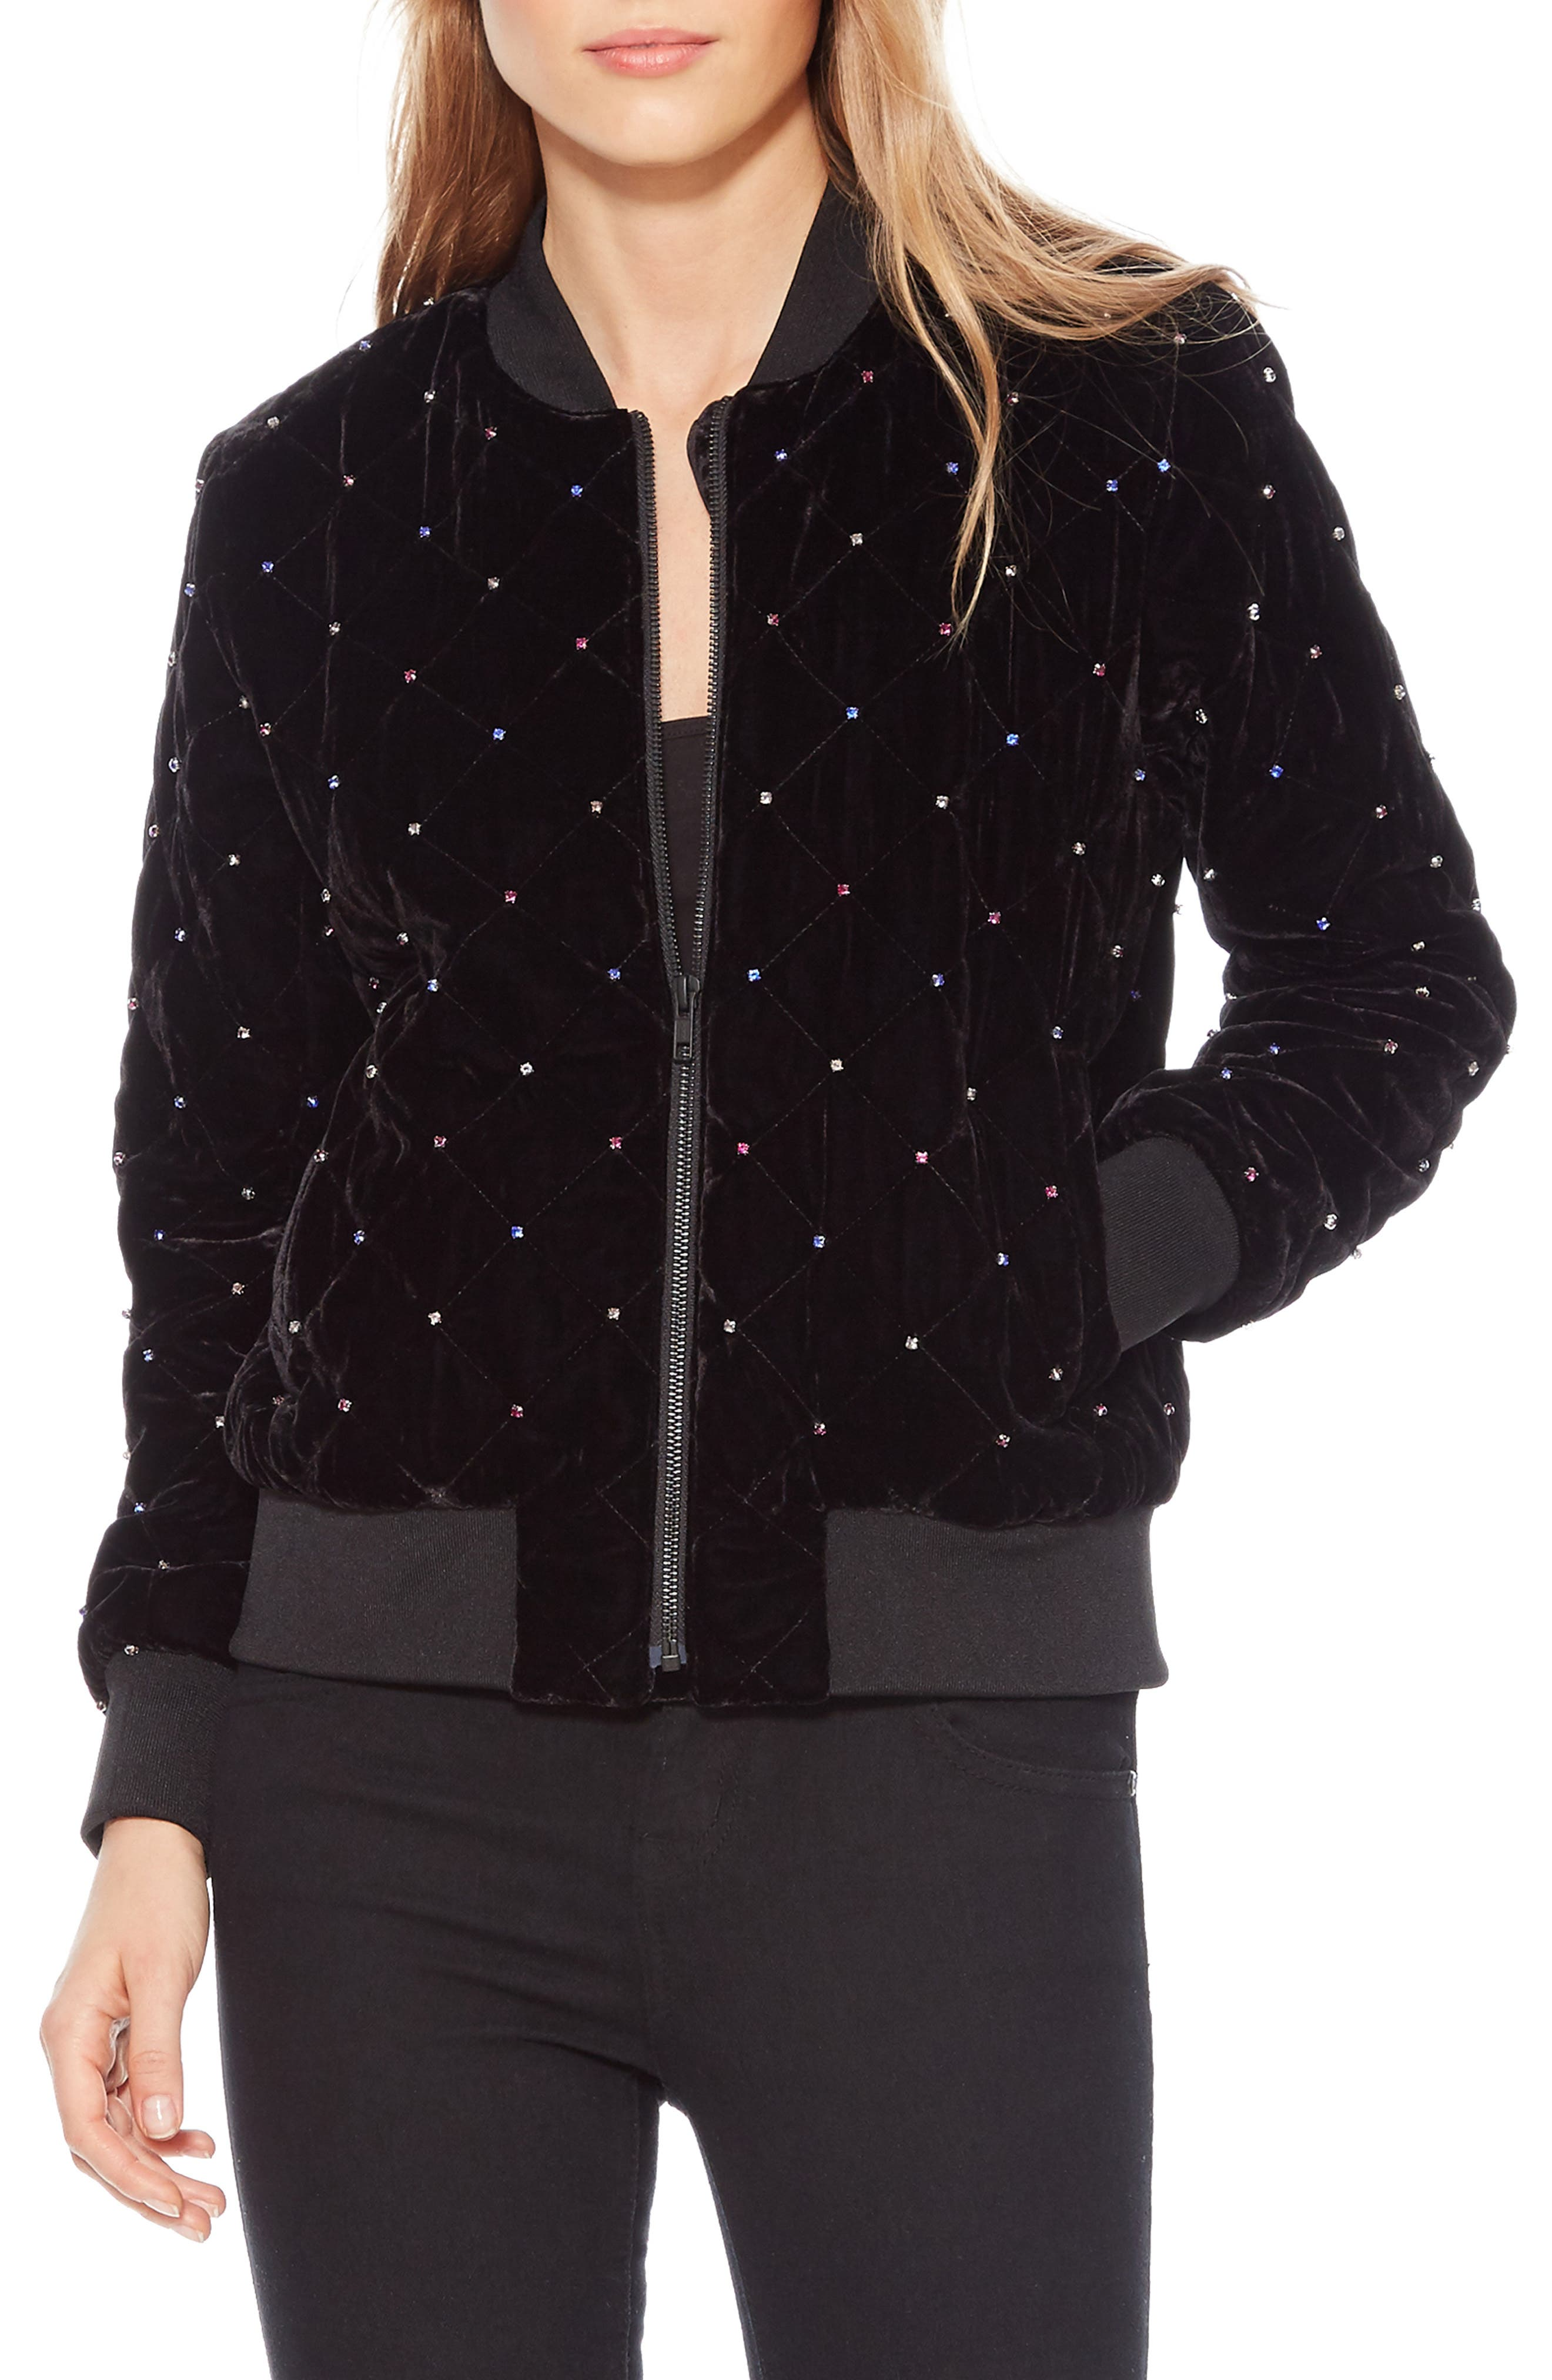 Meredith Velvet Bomber Jacket,                         Main,                         color, BLACK